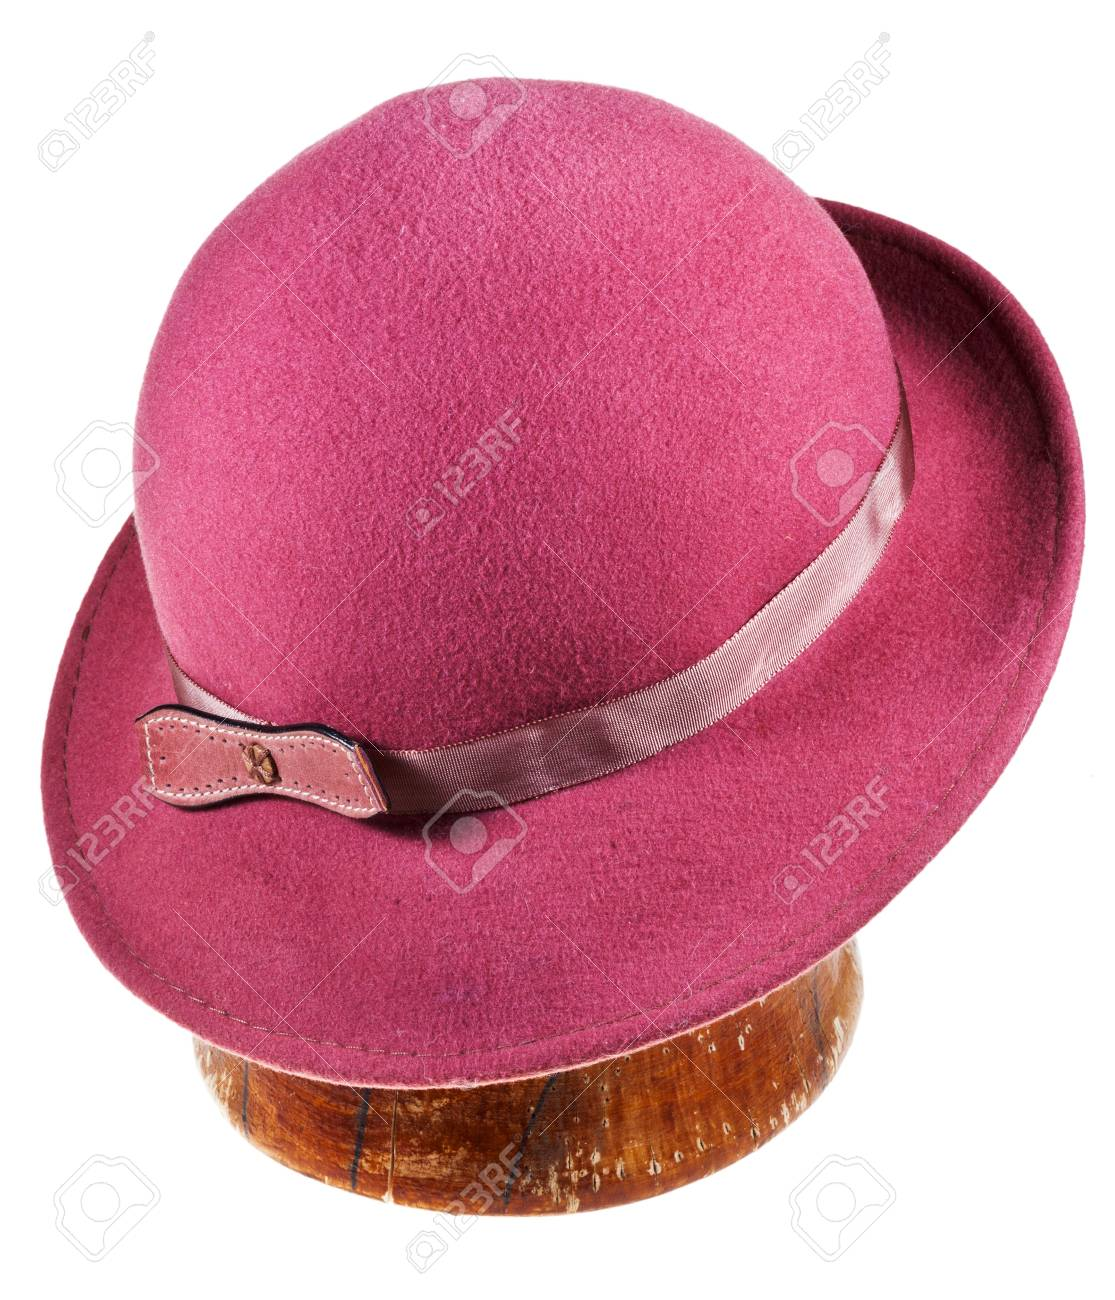 woman felt magenta hat with wide brim on wooden block isolated on white background Stock Photo - 19416623